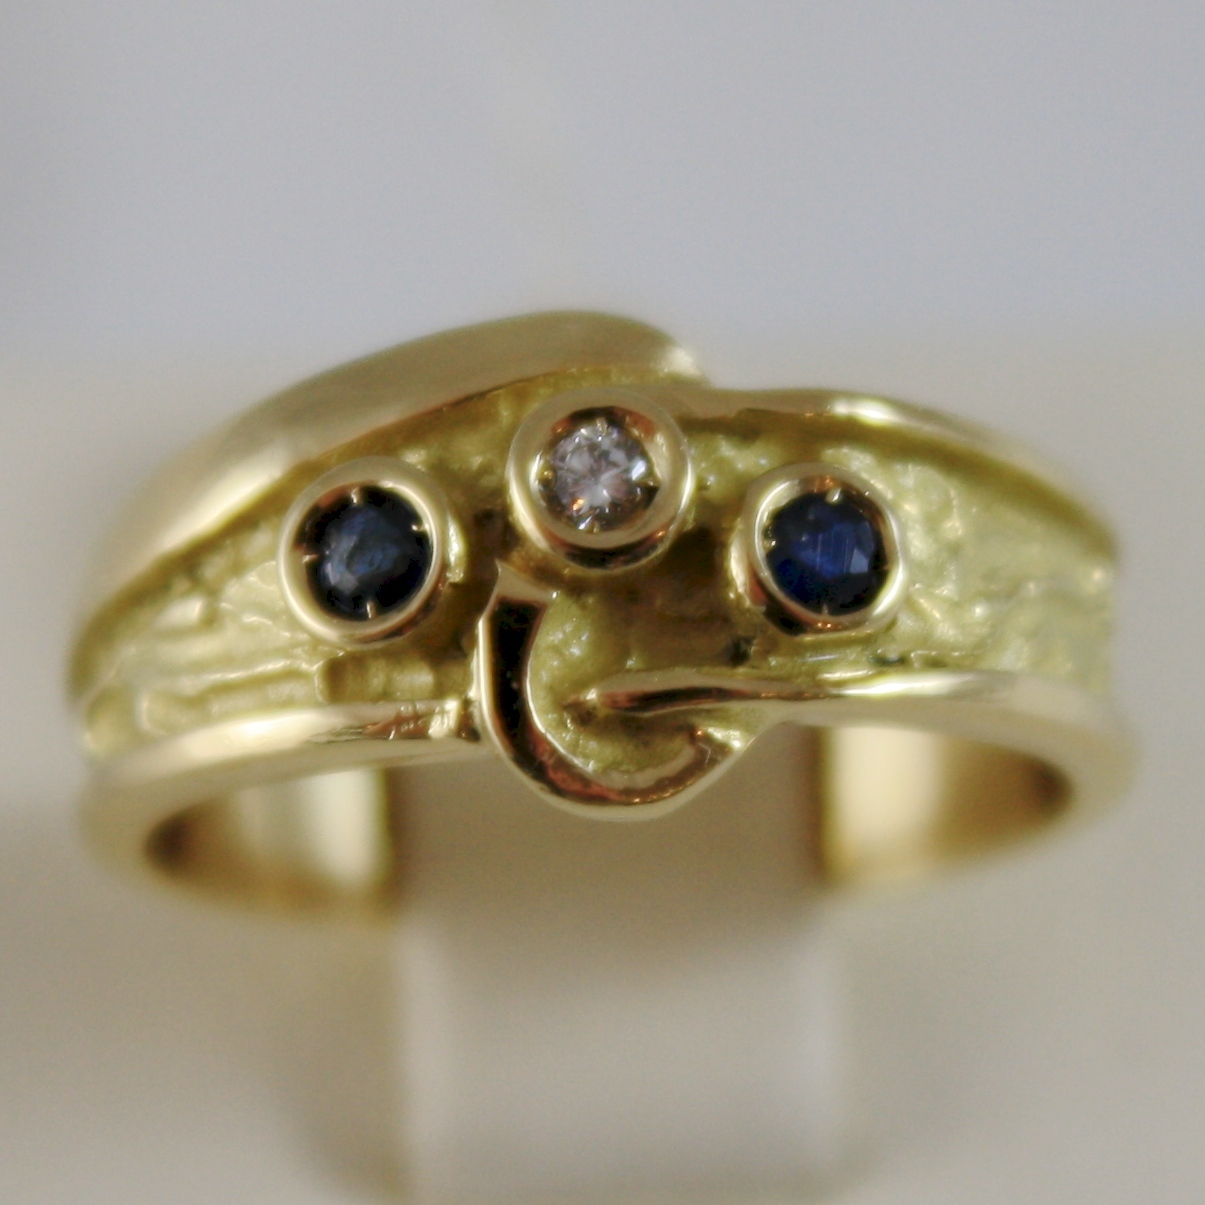 SOLID 18K YELLOW GOLD LITTLE FINGER RING DIAMOND AND BLUE SAPPHIRE MADE IN ITALY